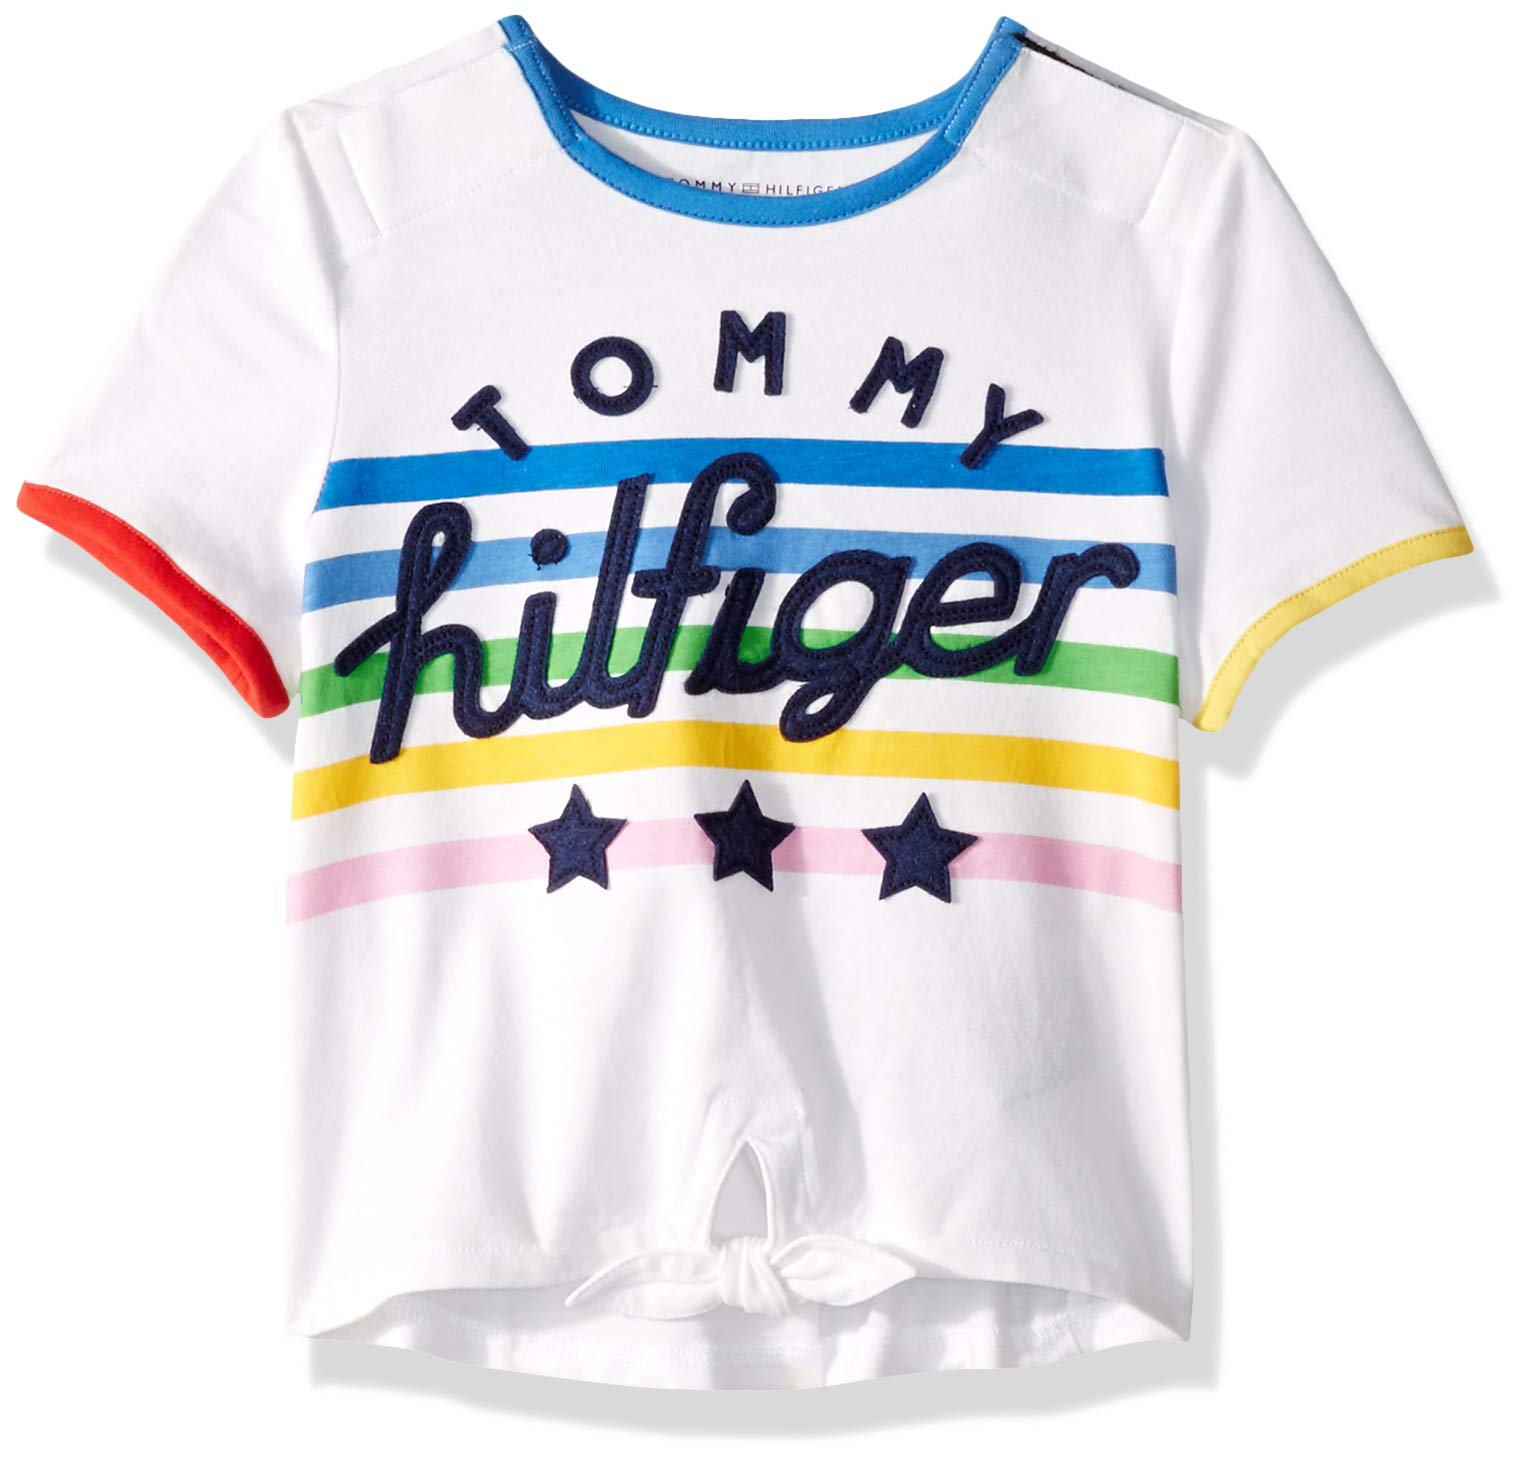 Tommy Hilfiger Girls' Adaptive Tie Front T Shirt with Velcro Brand Closure at Shoulders